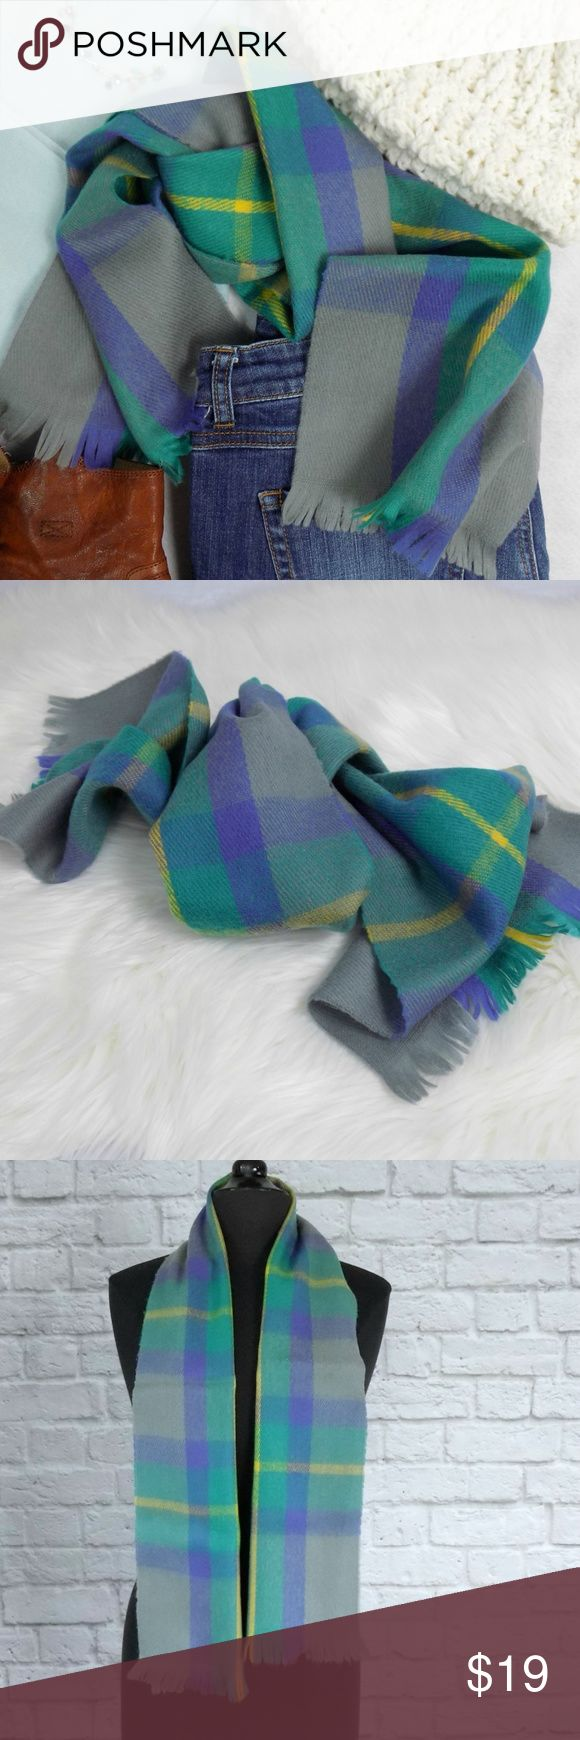 """Vintage Jewel Tone Plaid Scarf Wrap Tie Tie this scarf in trending colors and pattern onto your favorite bag so you always have that chic little wrap this season (even if the weather turns cold again). Soft, warm, timeless.  Brand: Vintage, circa 1980's Color: soft gray, blue-green, purple, electric yellow Width: 10"""" Length: 54"""" Fabric: acrylic blend Care: hand clean Made in USA Excellent Vintage Condition  Bundle and Save on Shipping! Measurements are Approximate. Vintage Accessories…"""